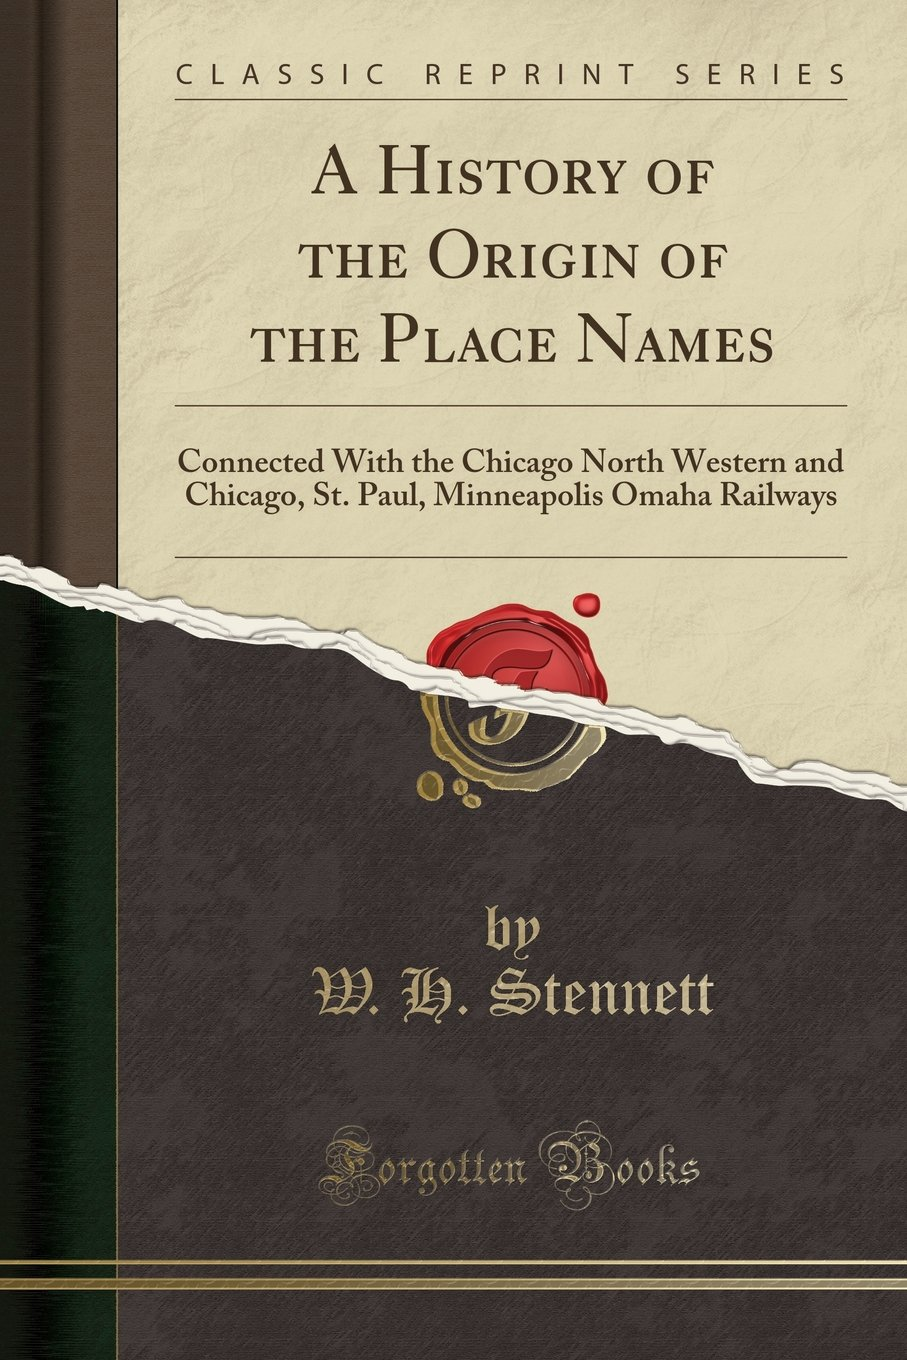 Read Online A History of the Origin of the Place Names: Connected With the Chicago North Western and Chicago, St. Paul, Minneapolis Omaha Railways (Classic Reprint) ebook